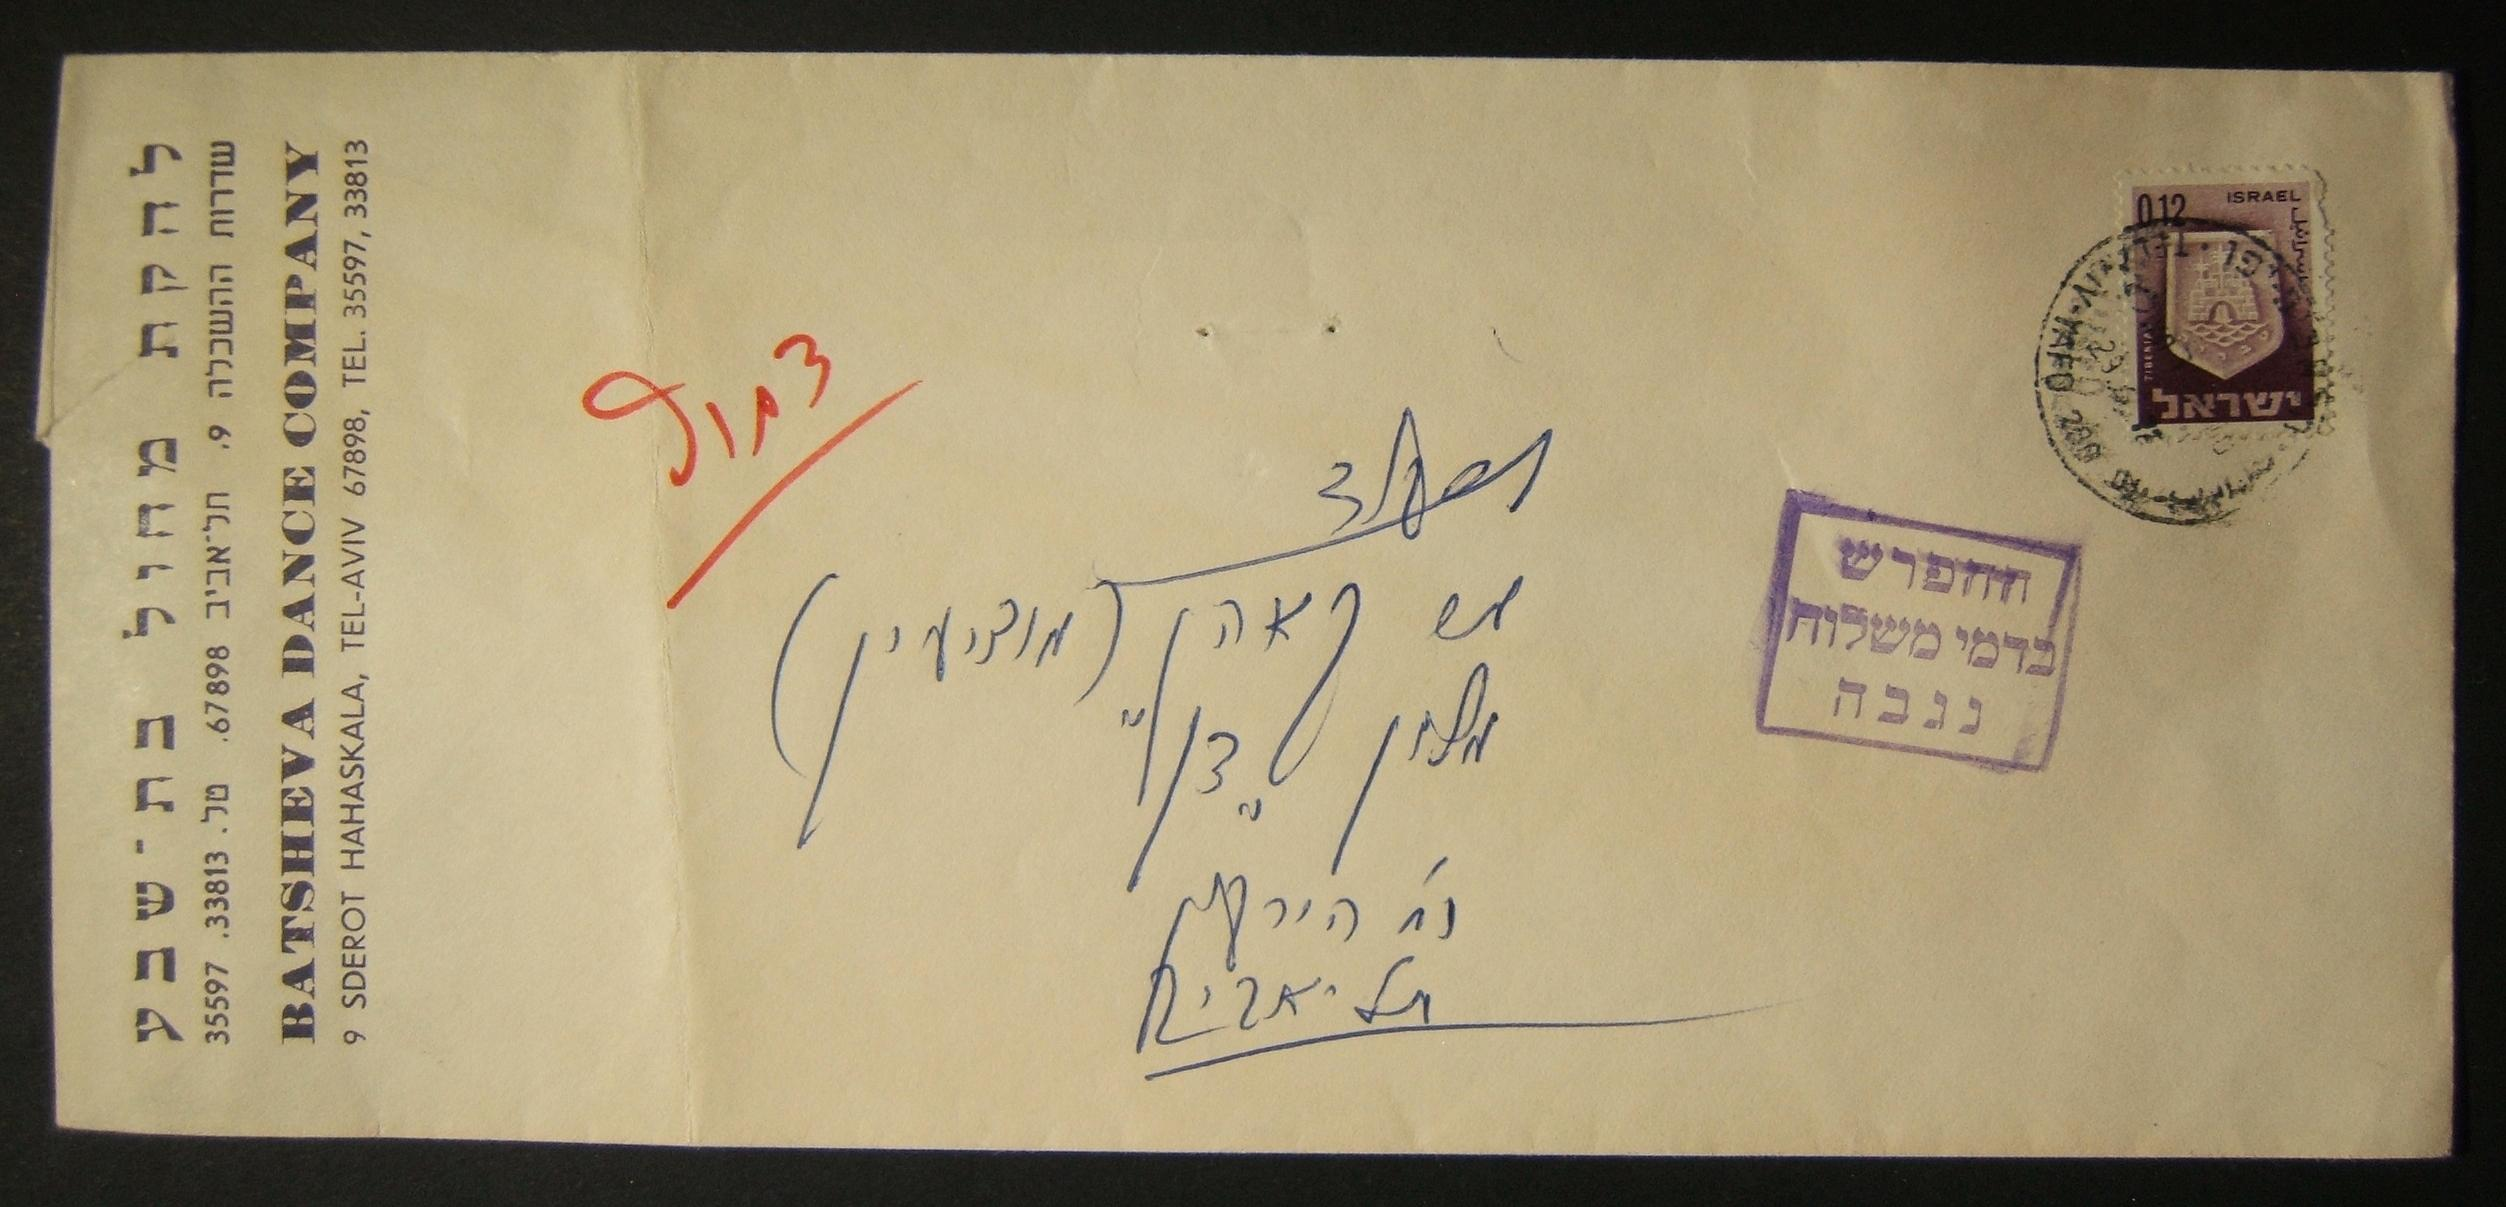 1971 paid taxed cover: 29-6-1971 local TLV long commercial cover franked 0.12L during the DO-13 period (letter rate 0.18L); missing franking was collected upon arrival and the cove